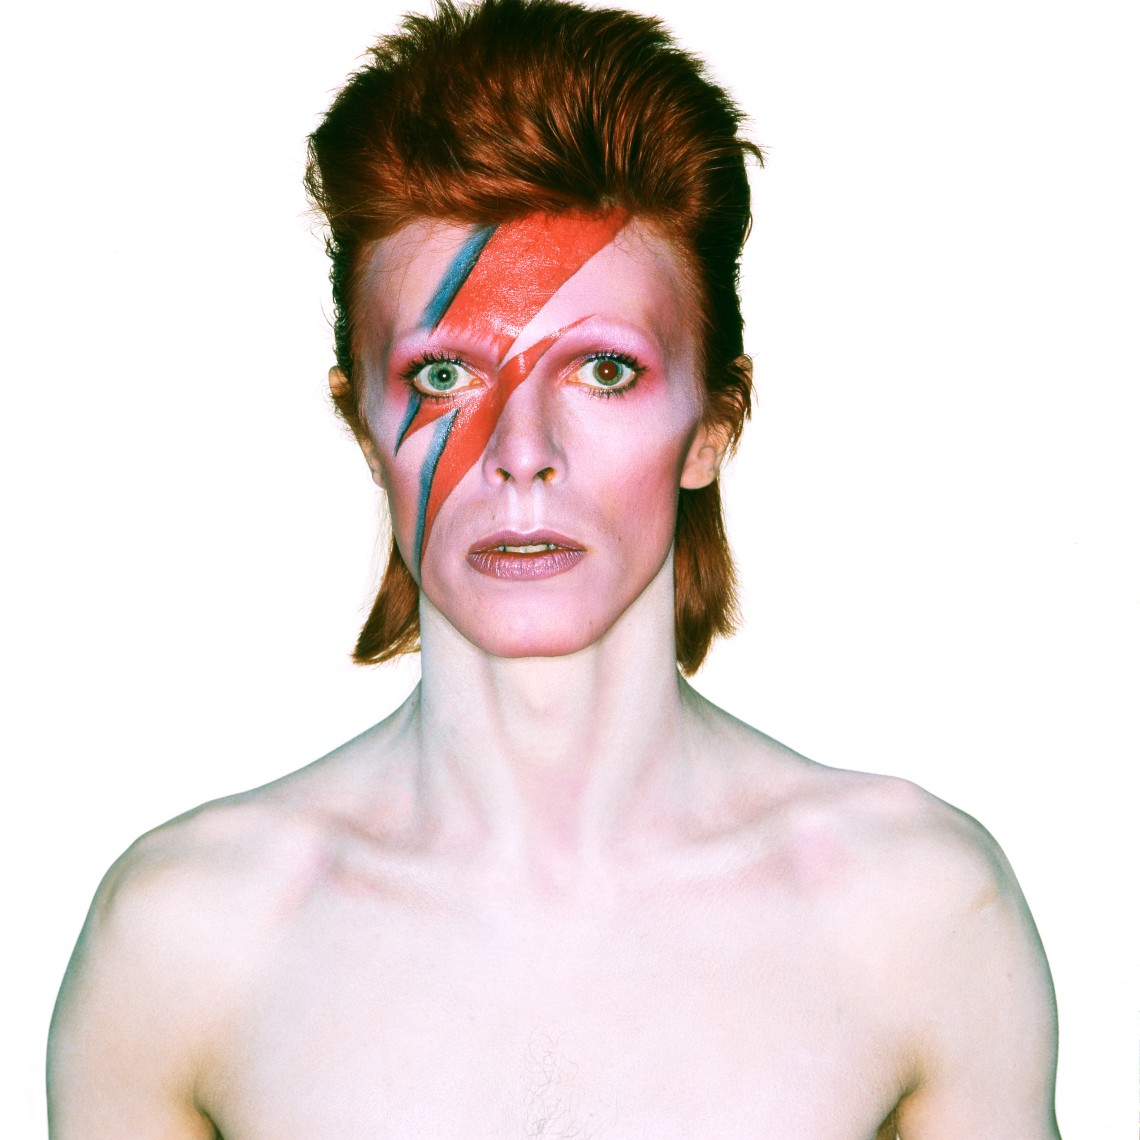 album-cover-shoot-for-aladdin-sane-1973-photograph-by-brian-duffy-c2a9-duffy-archive